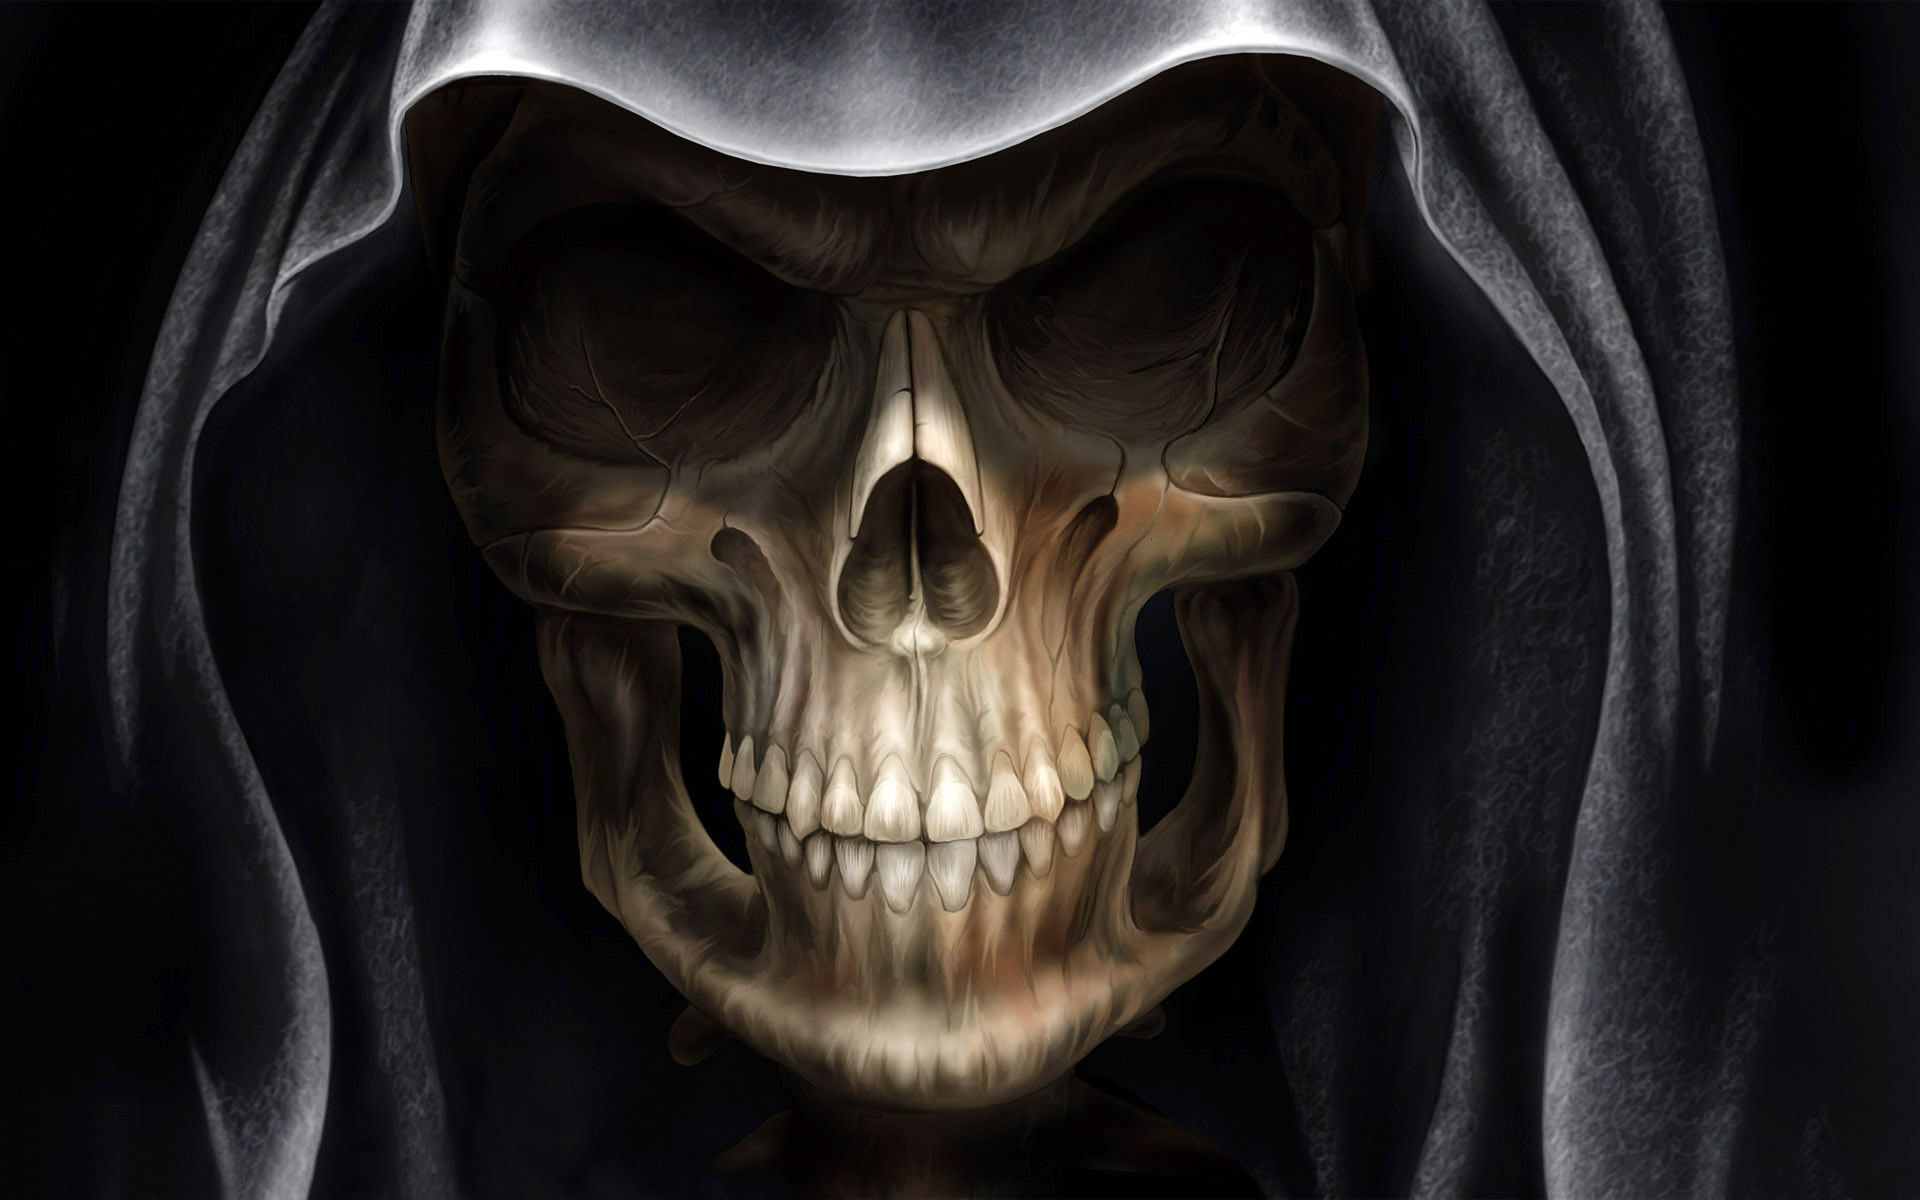 devil skull wallpaper hd - http://imashon/w/devil-skull, Human body